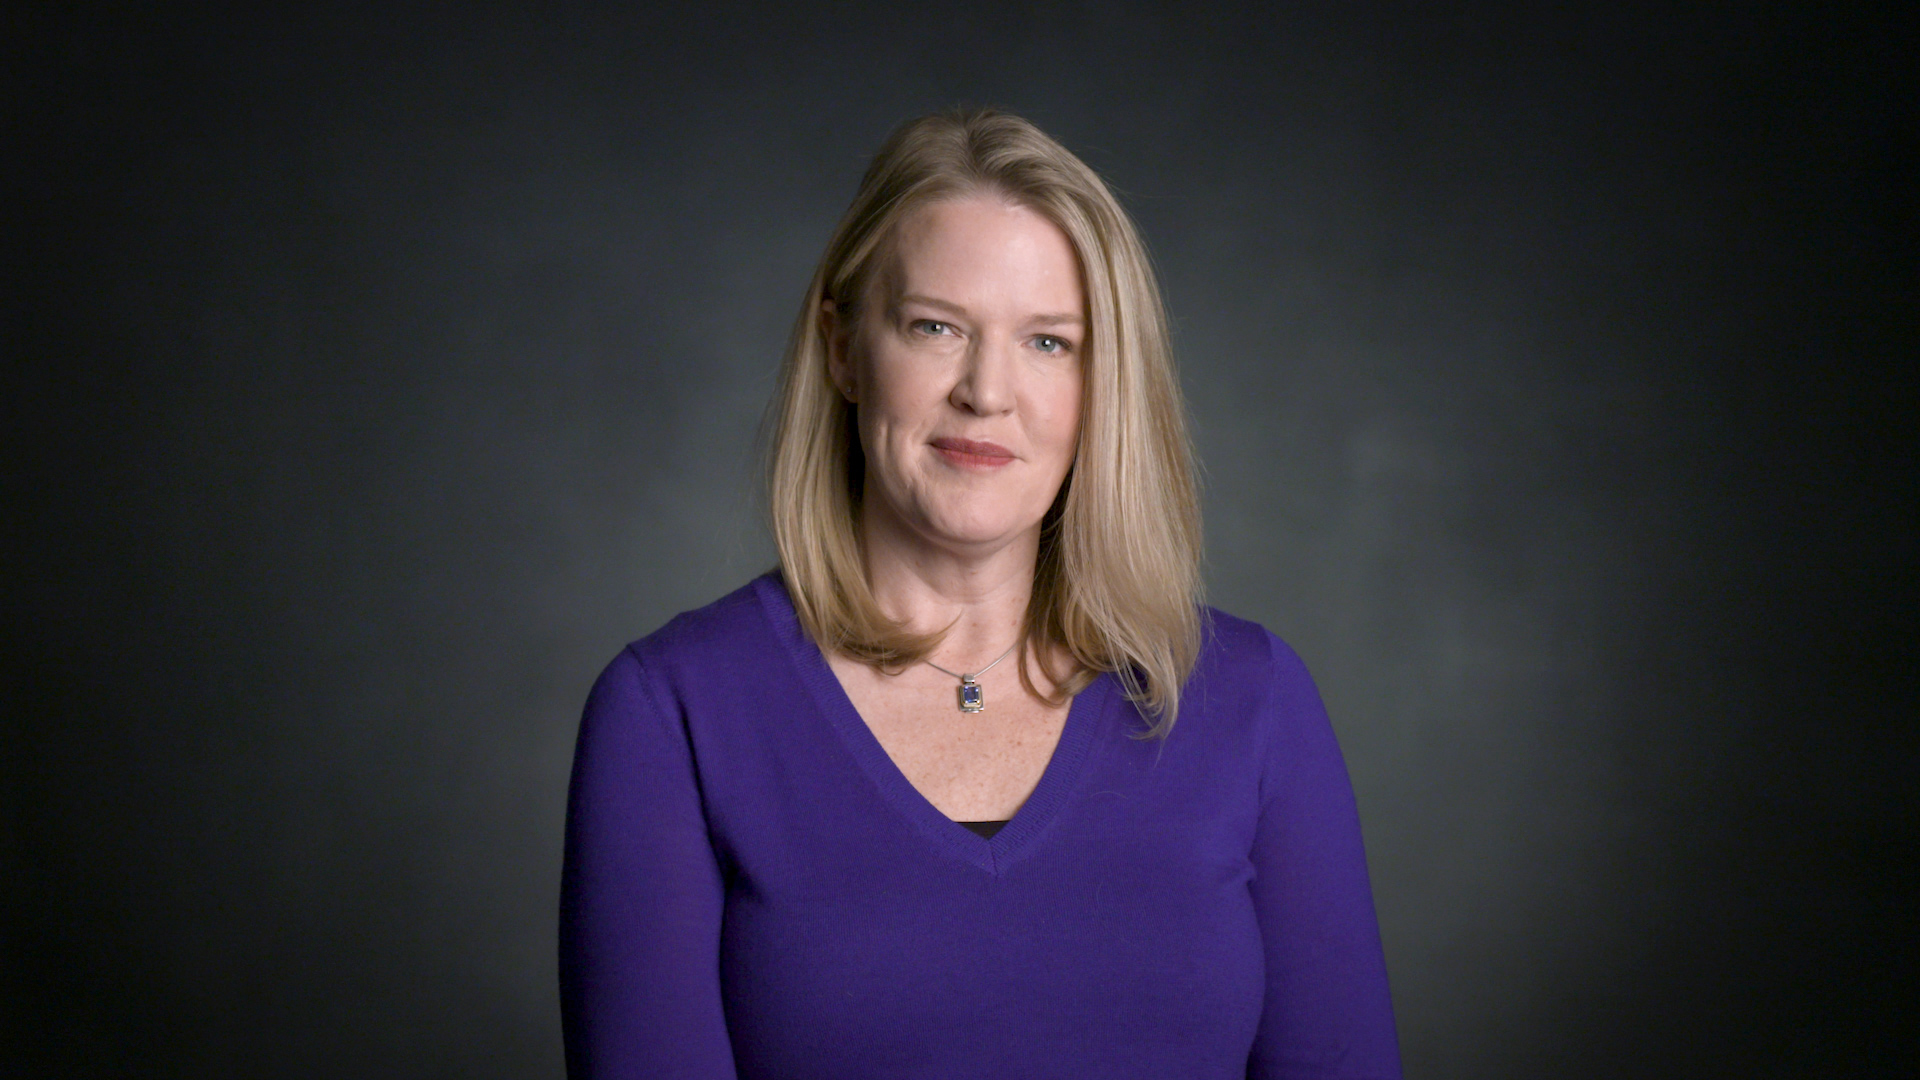 Valerie Browning   Co-Founder of Hexco Academic